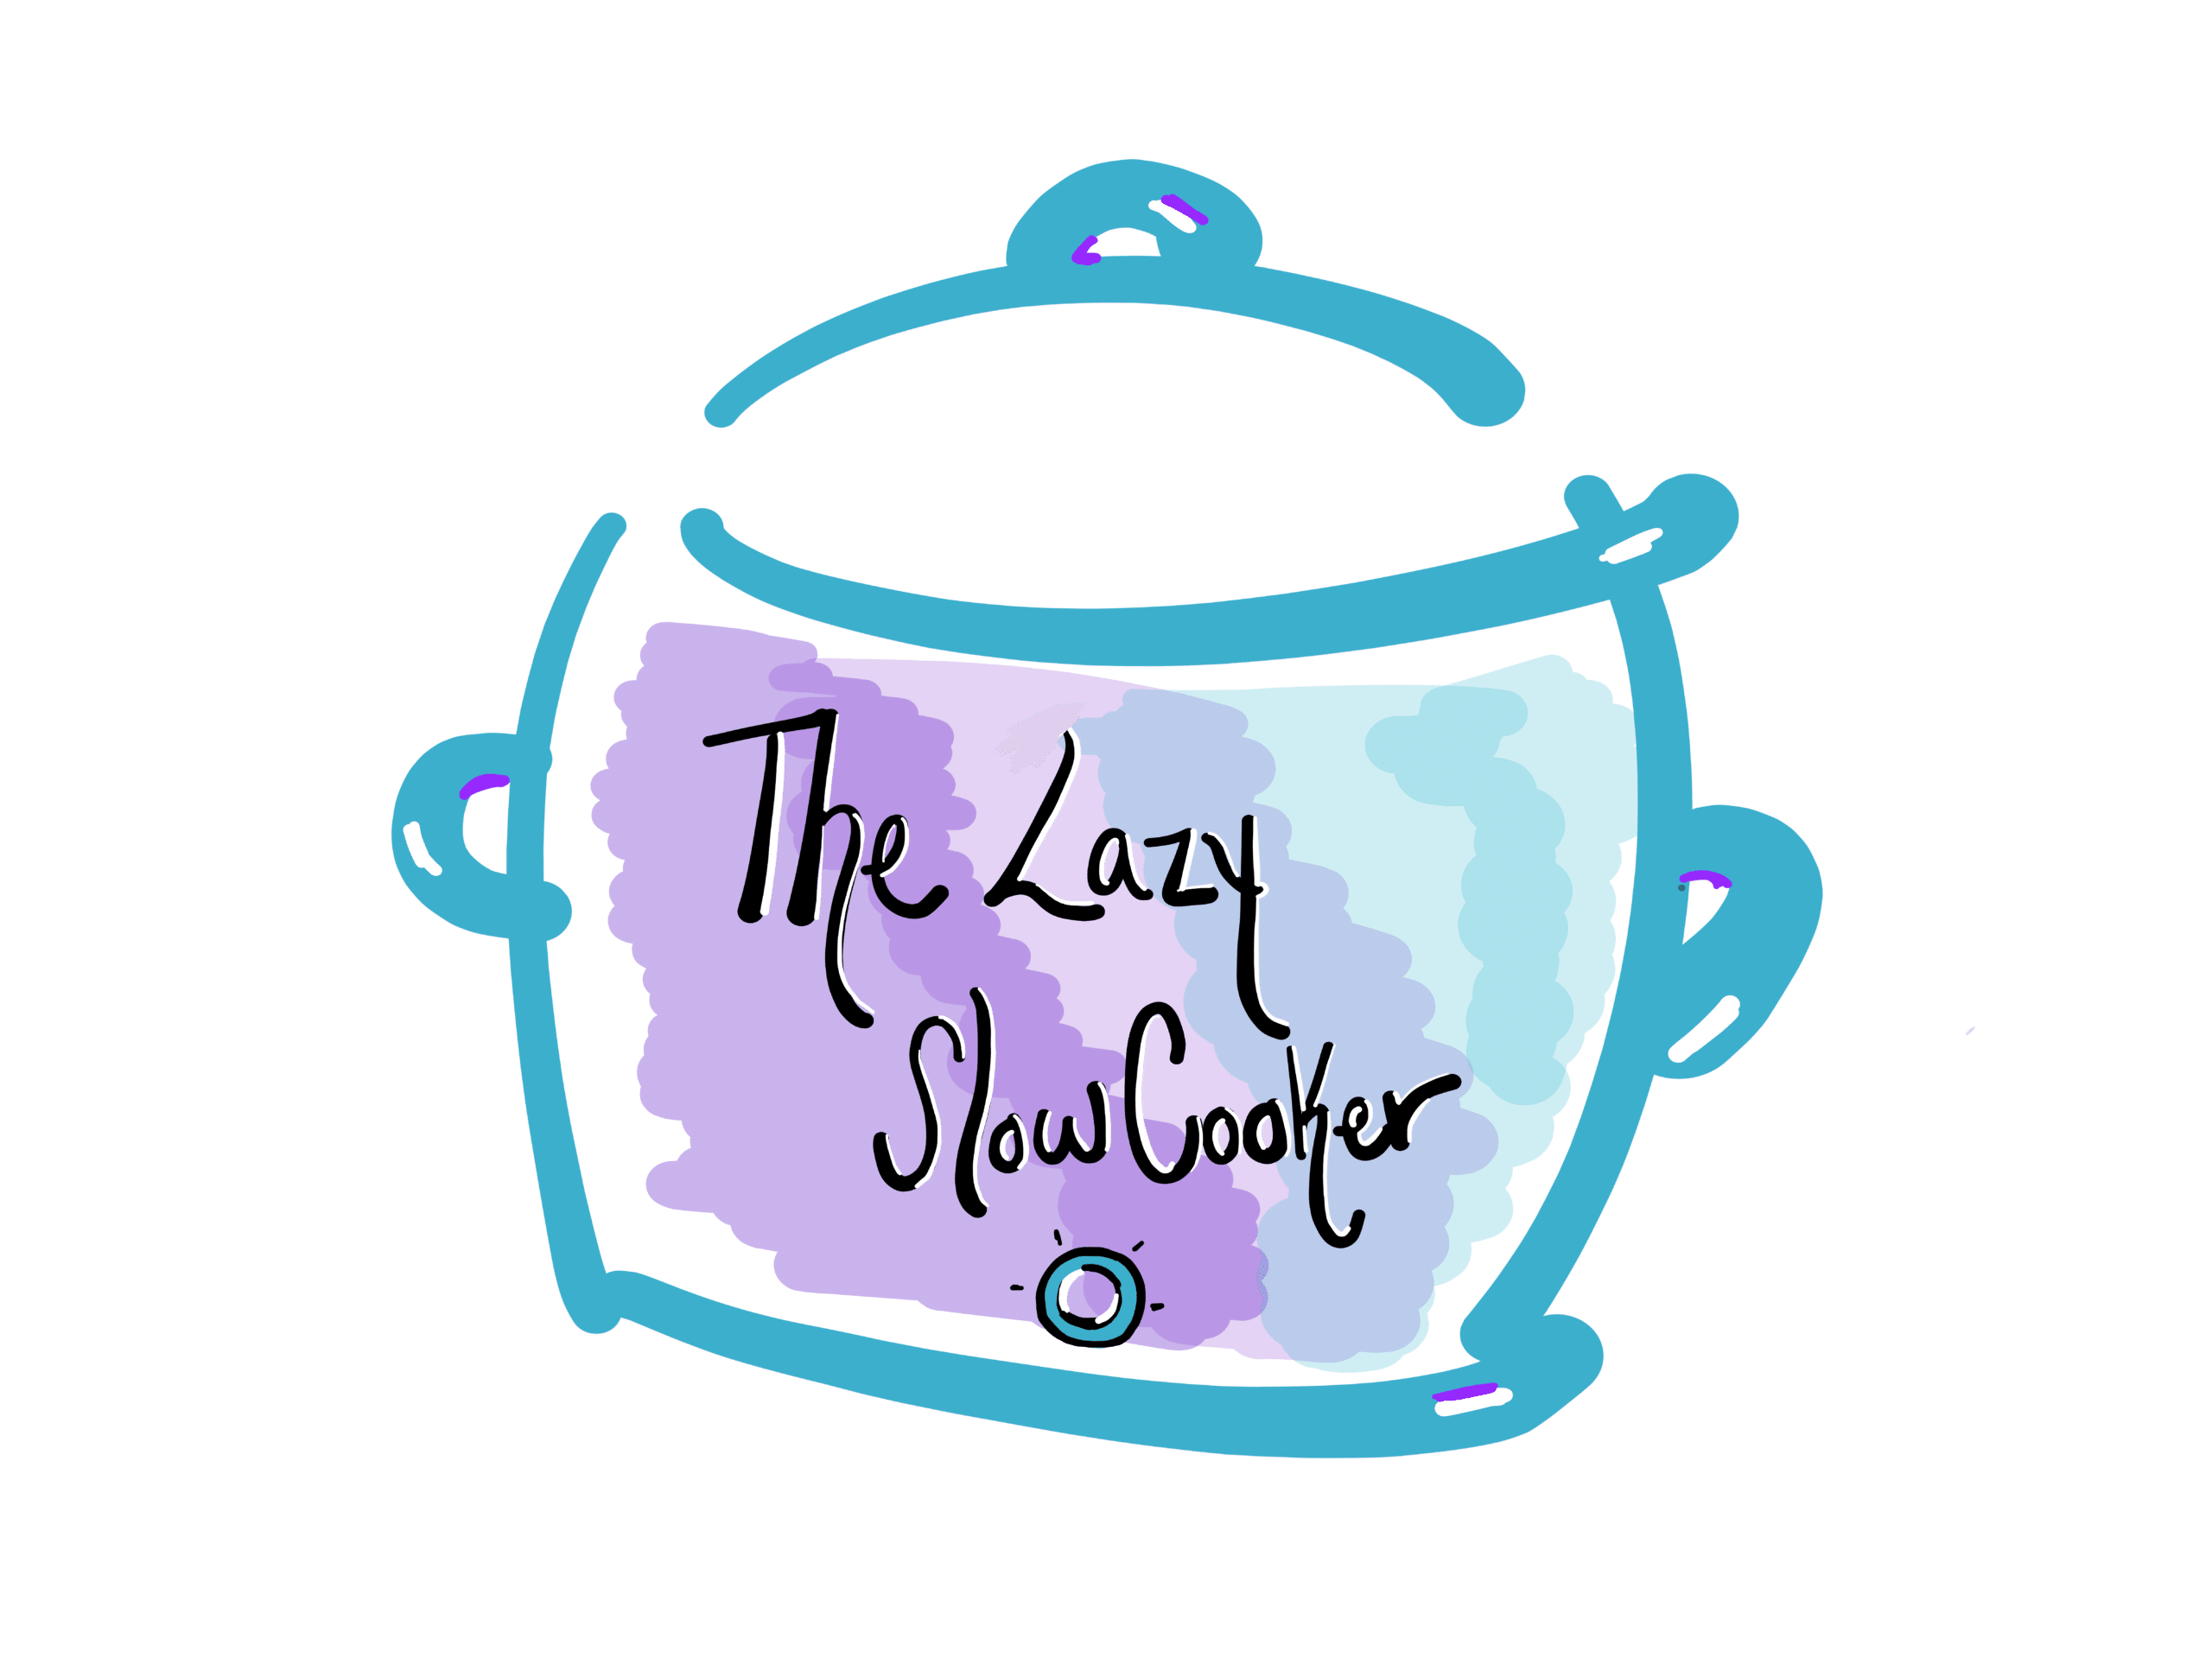 Lazy slow cooker logo with no background